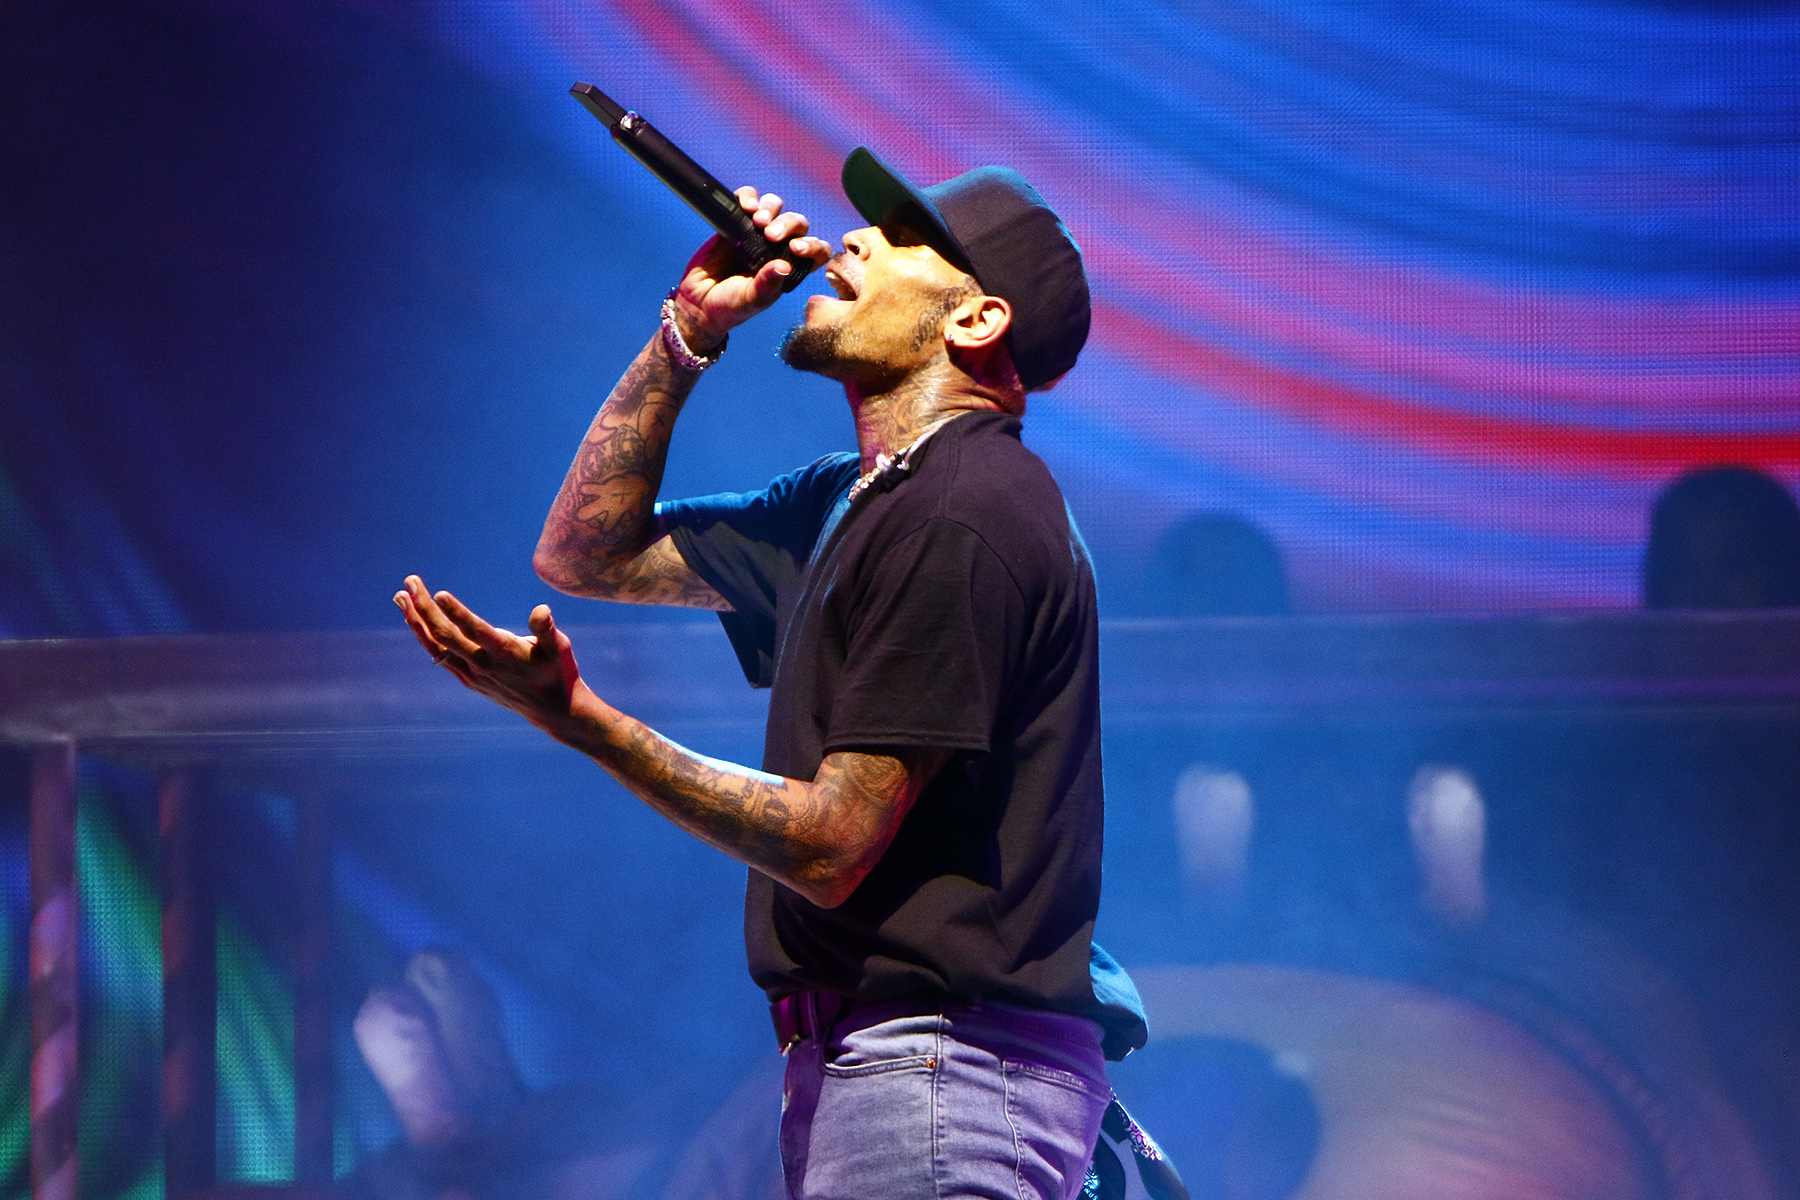 Review: At Chris Brown's concert in Tampa, a reflection on